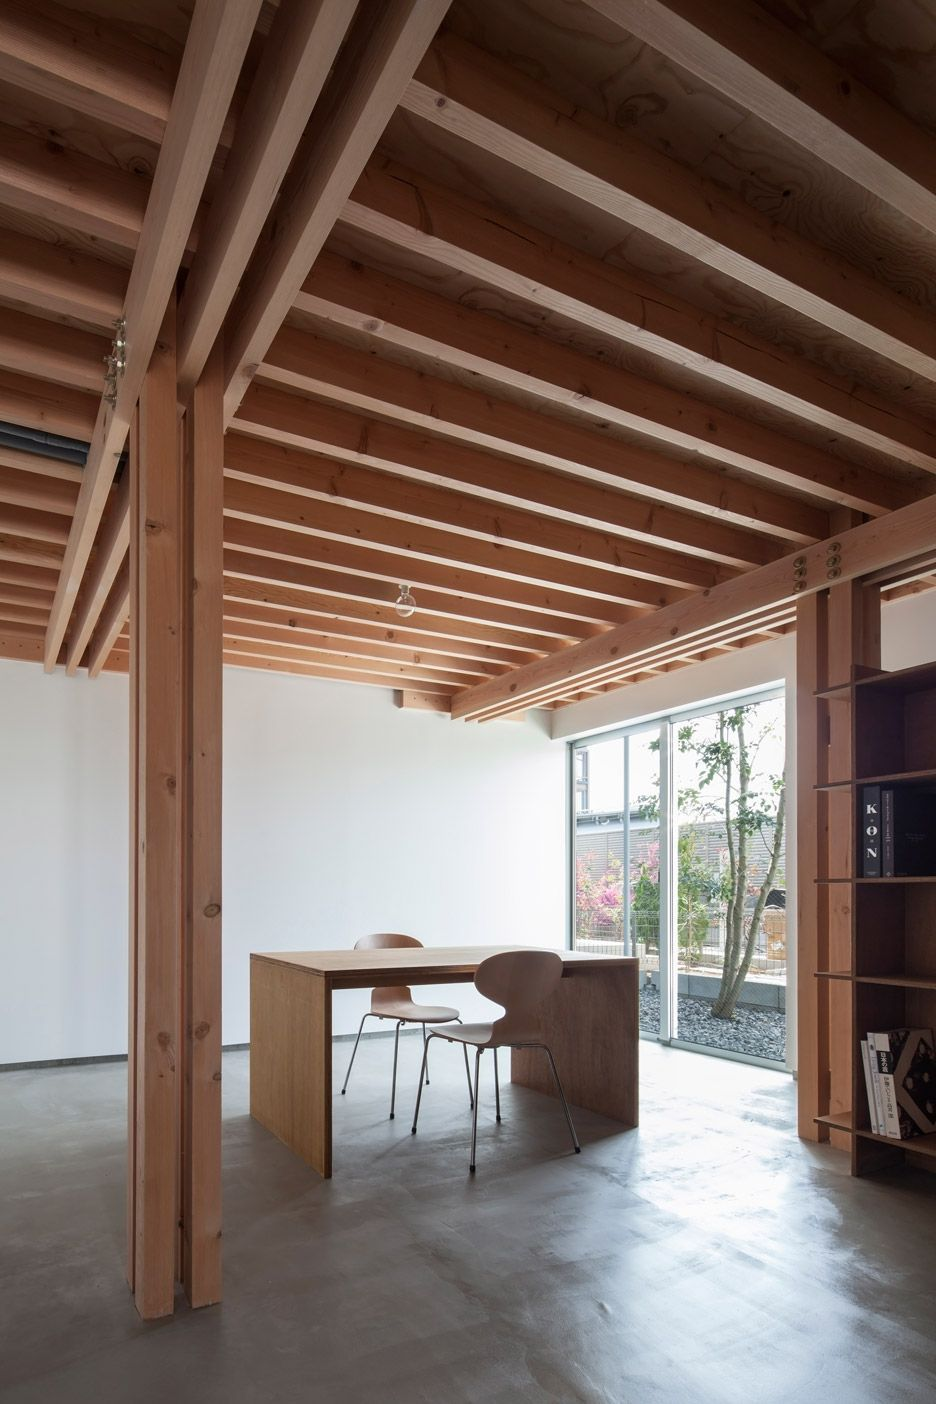 Exposed Ceiling Beams And Joists Composite Timber Column In